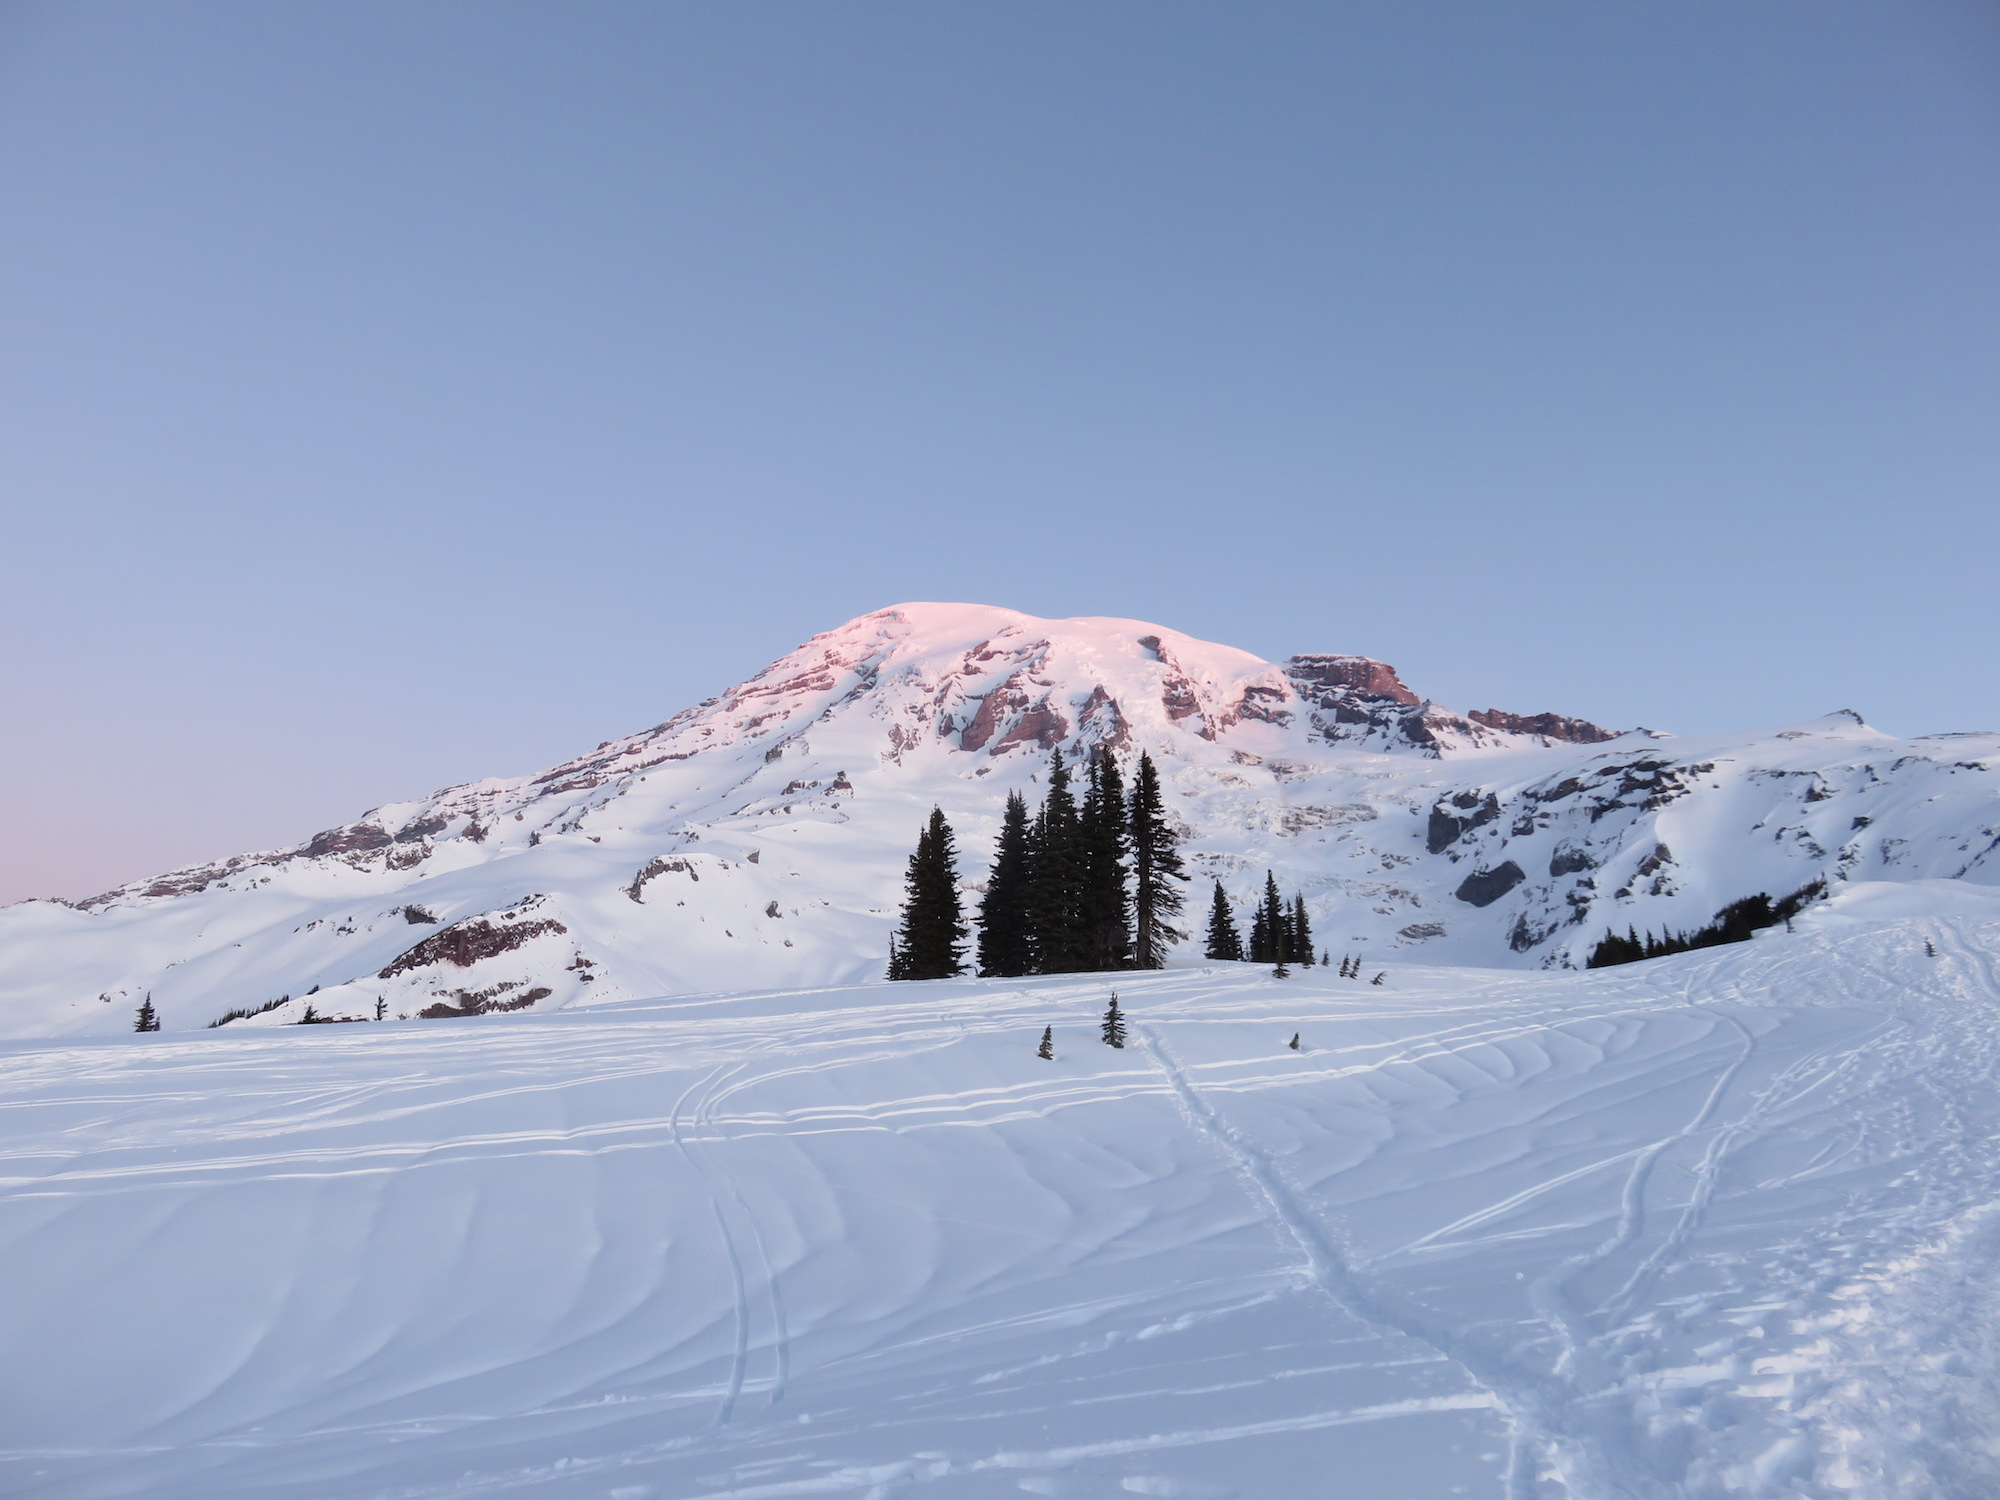 Sunrise light glows pink on the top of a snow covered mountain.